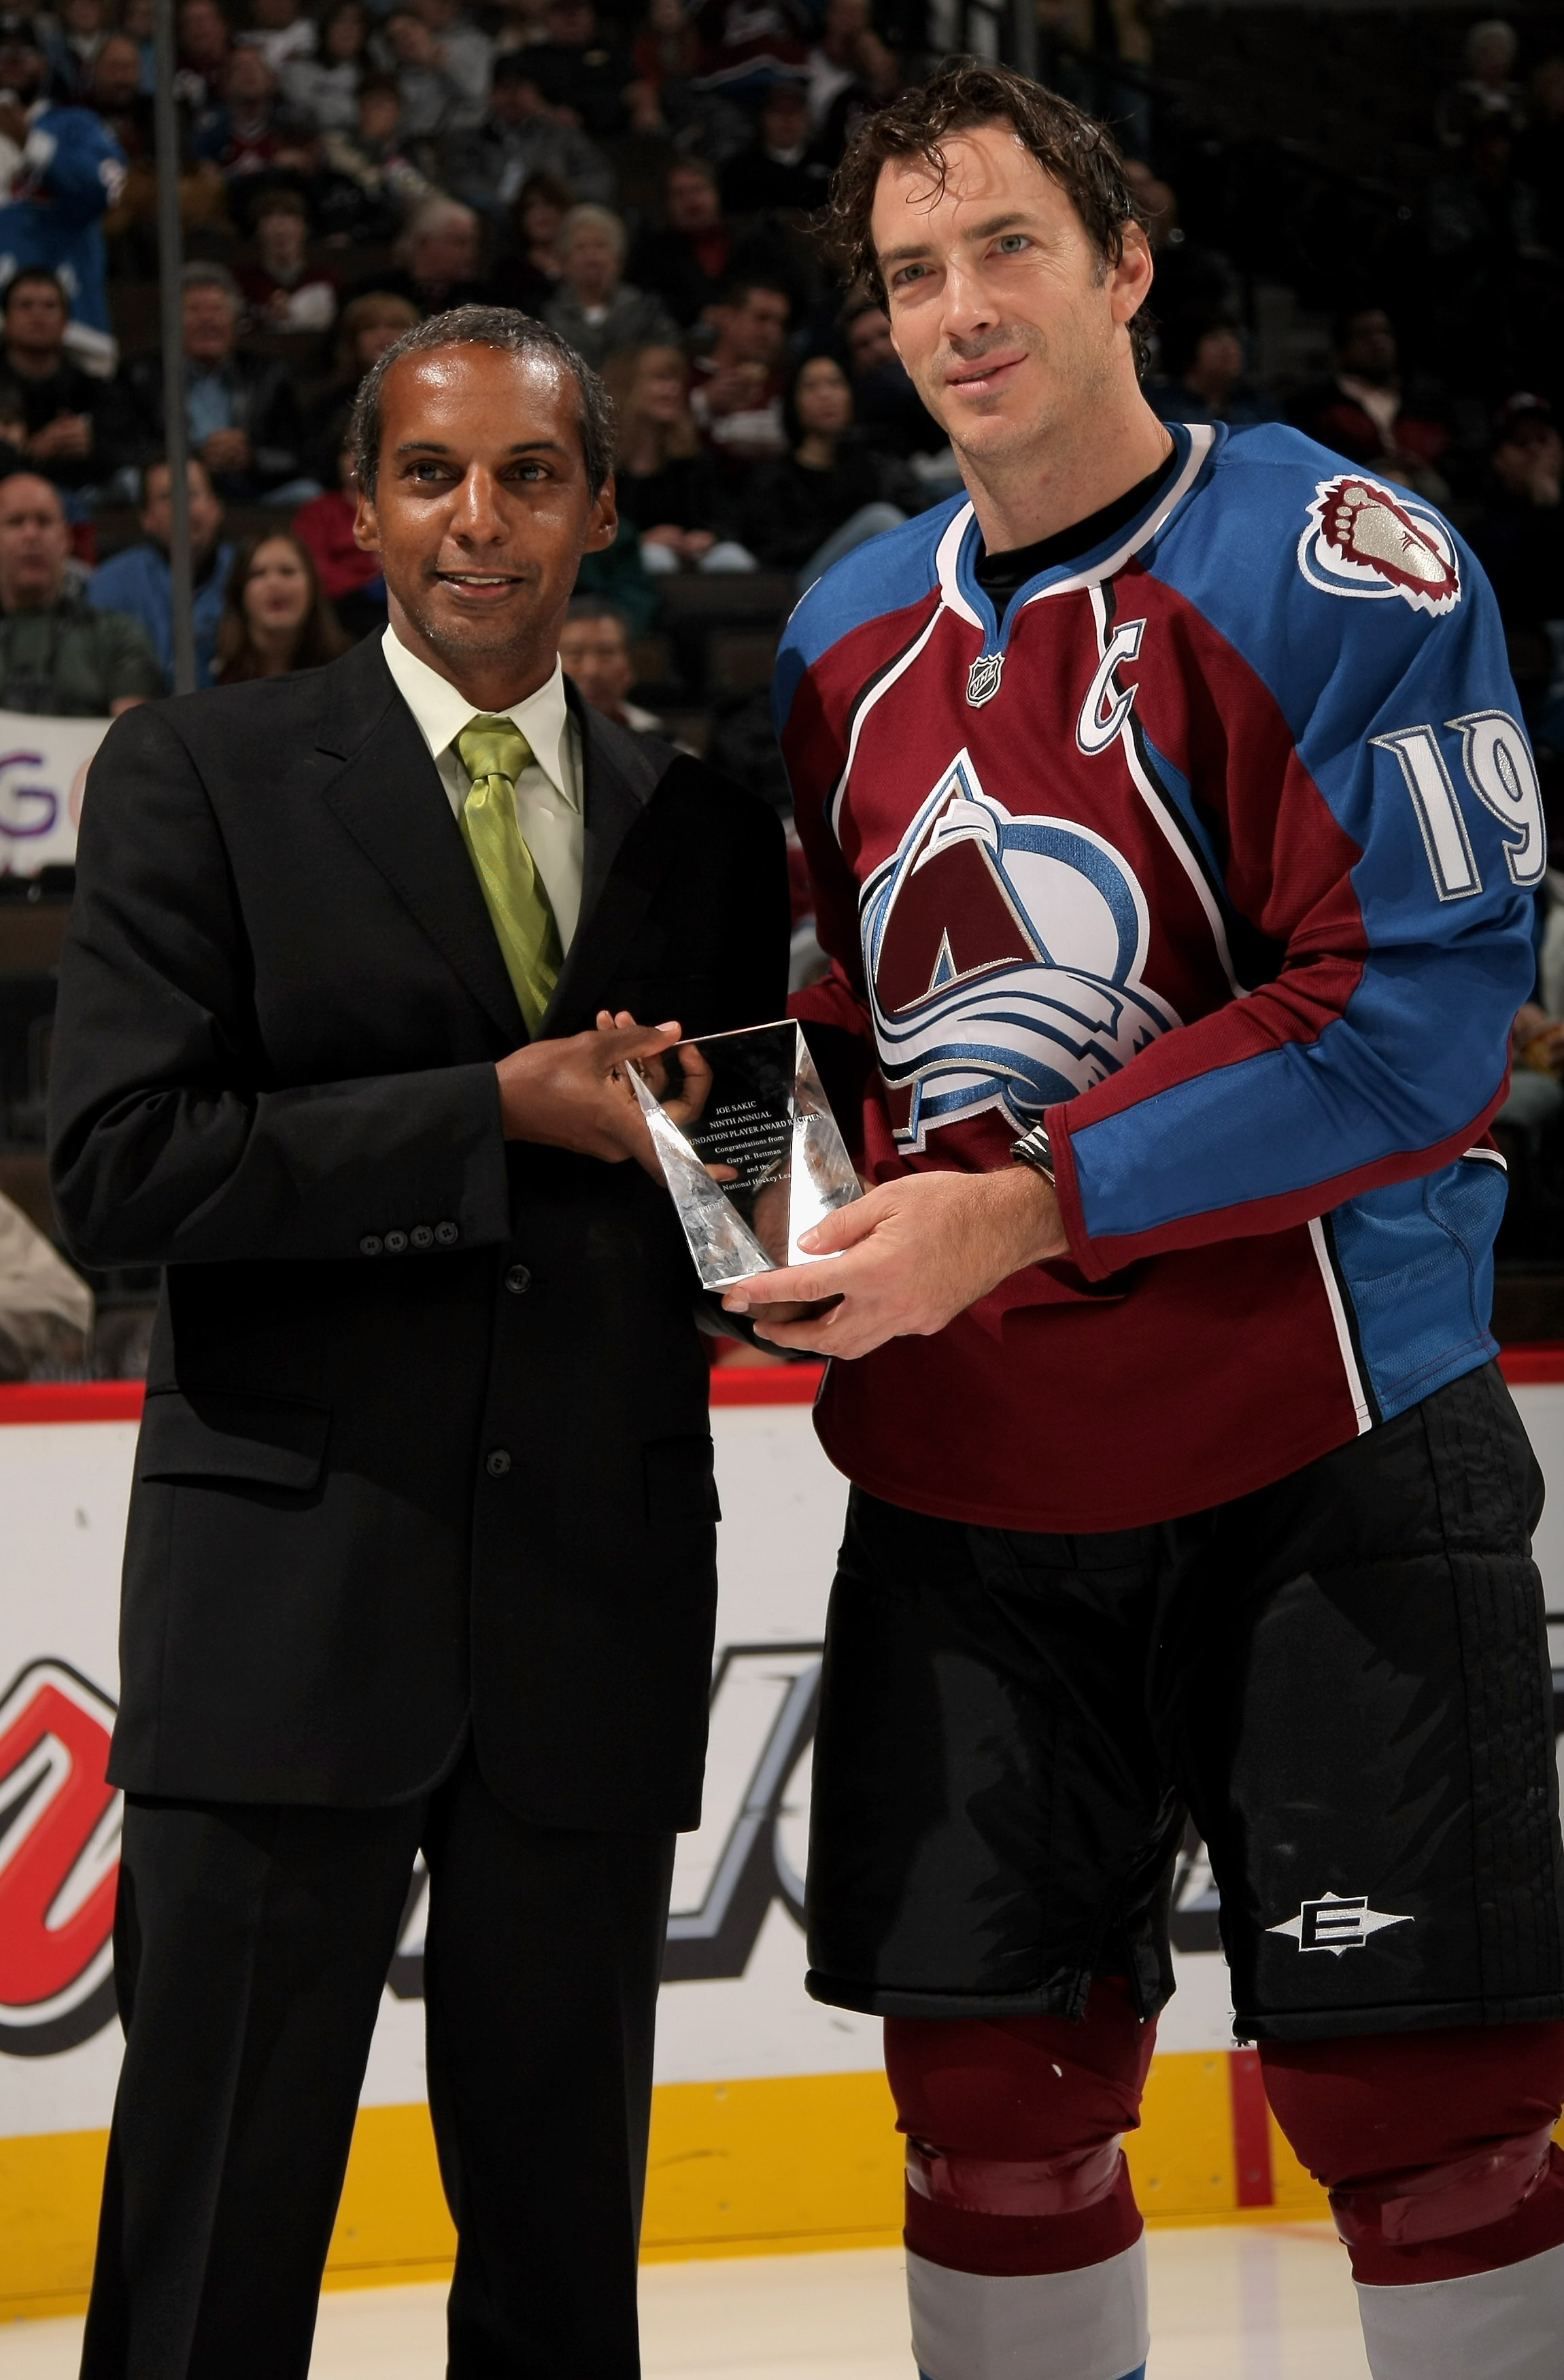 Kenneth Martin, Jr., NHL vice president of community and diversity programming, awards Joe Sakic #19 of the Colorado Avalanche the 2007 NHL Foundation Player Award prior to a game against the Calgary Flames at the Pepsi Center on October 16, 2007. (Photo by Doug Pensinger/Getty Images)